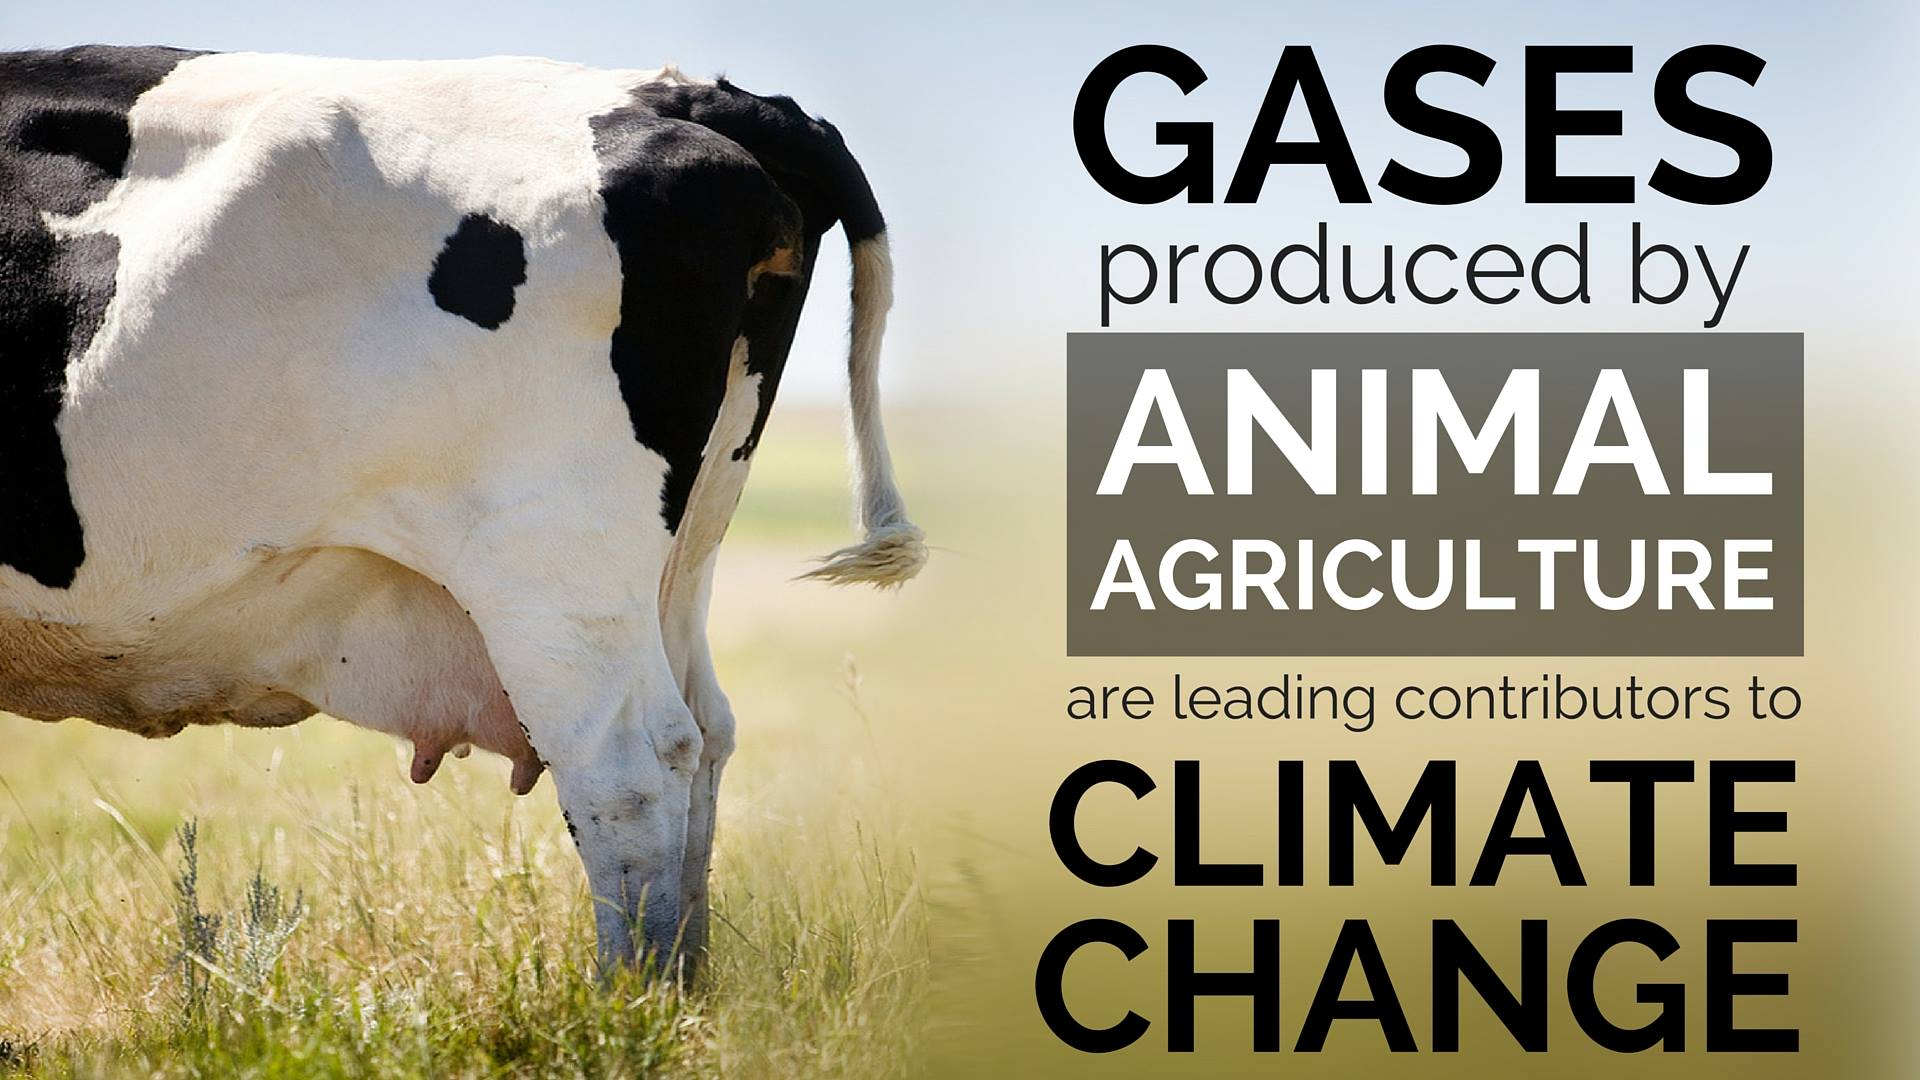 animal husbandry production and global climate Greenhouse gas abatement strategies for animal fertiliser animal husbandry 1 introduction global atmospheric production from animal.